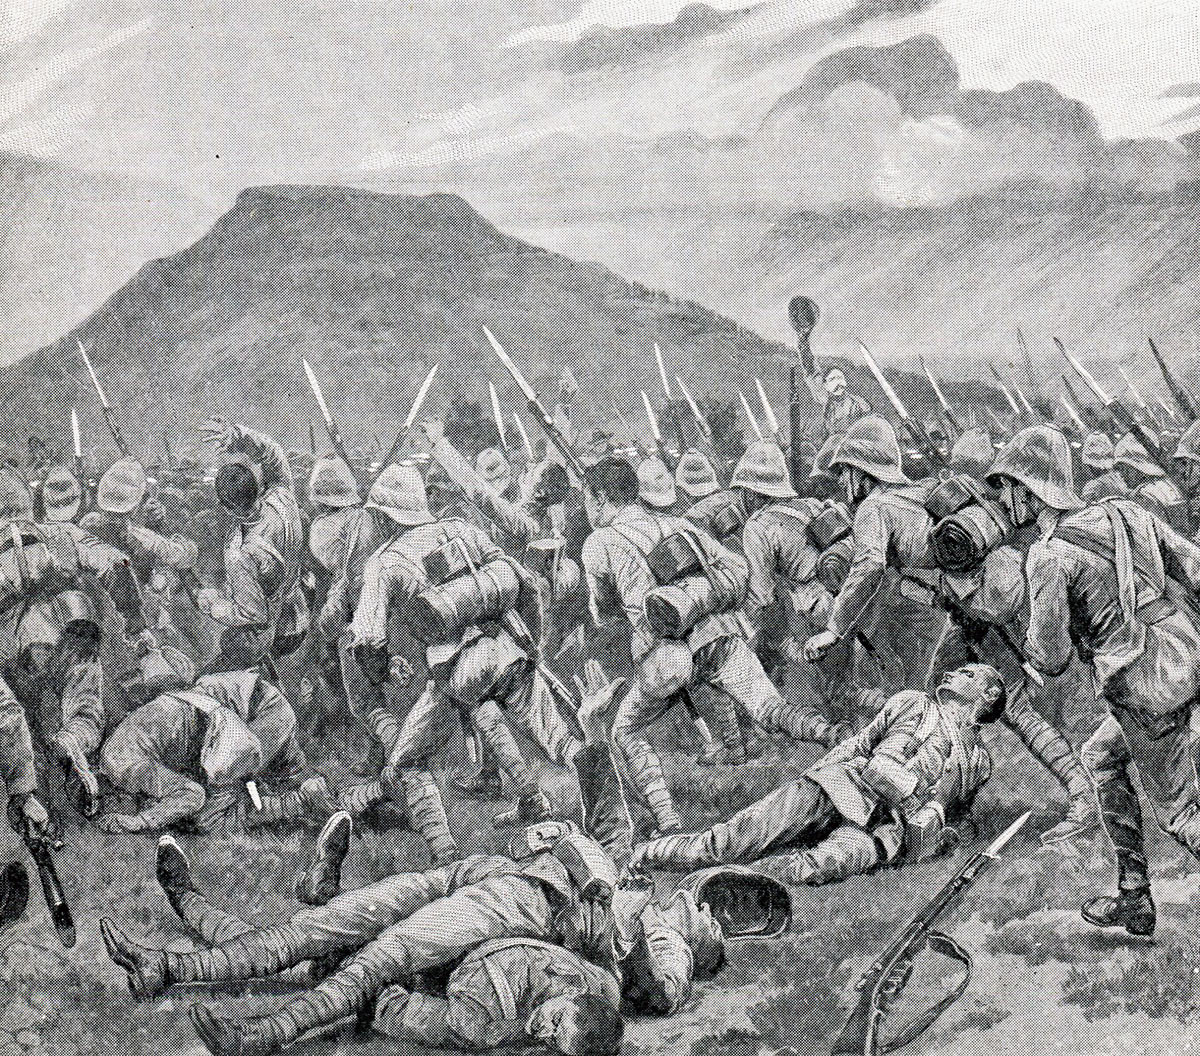 Devons attacking at Wagon Hill: Siege of Ladysmith, 2nd November 1899 to 27th February 1900 in the Great Boer War: picture by Richard Caton Woodville